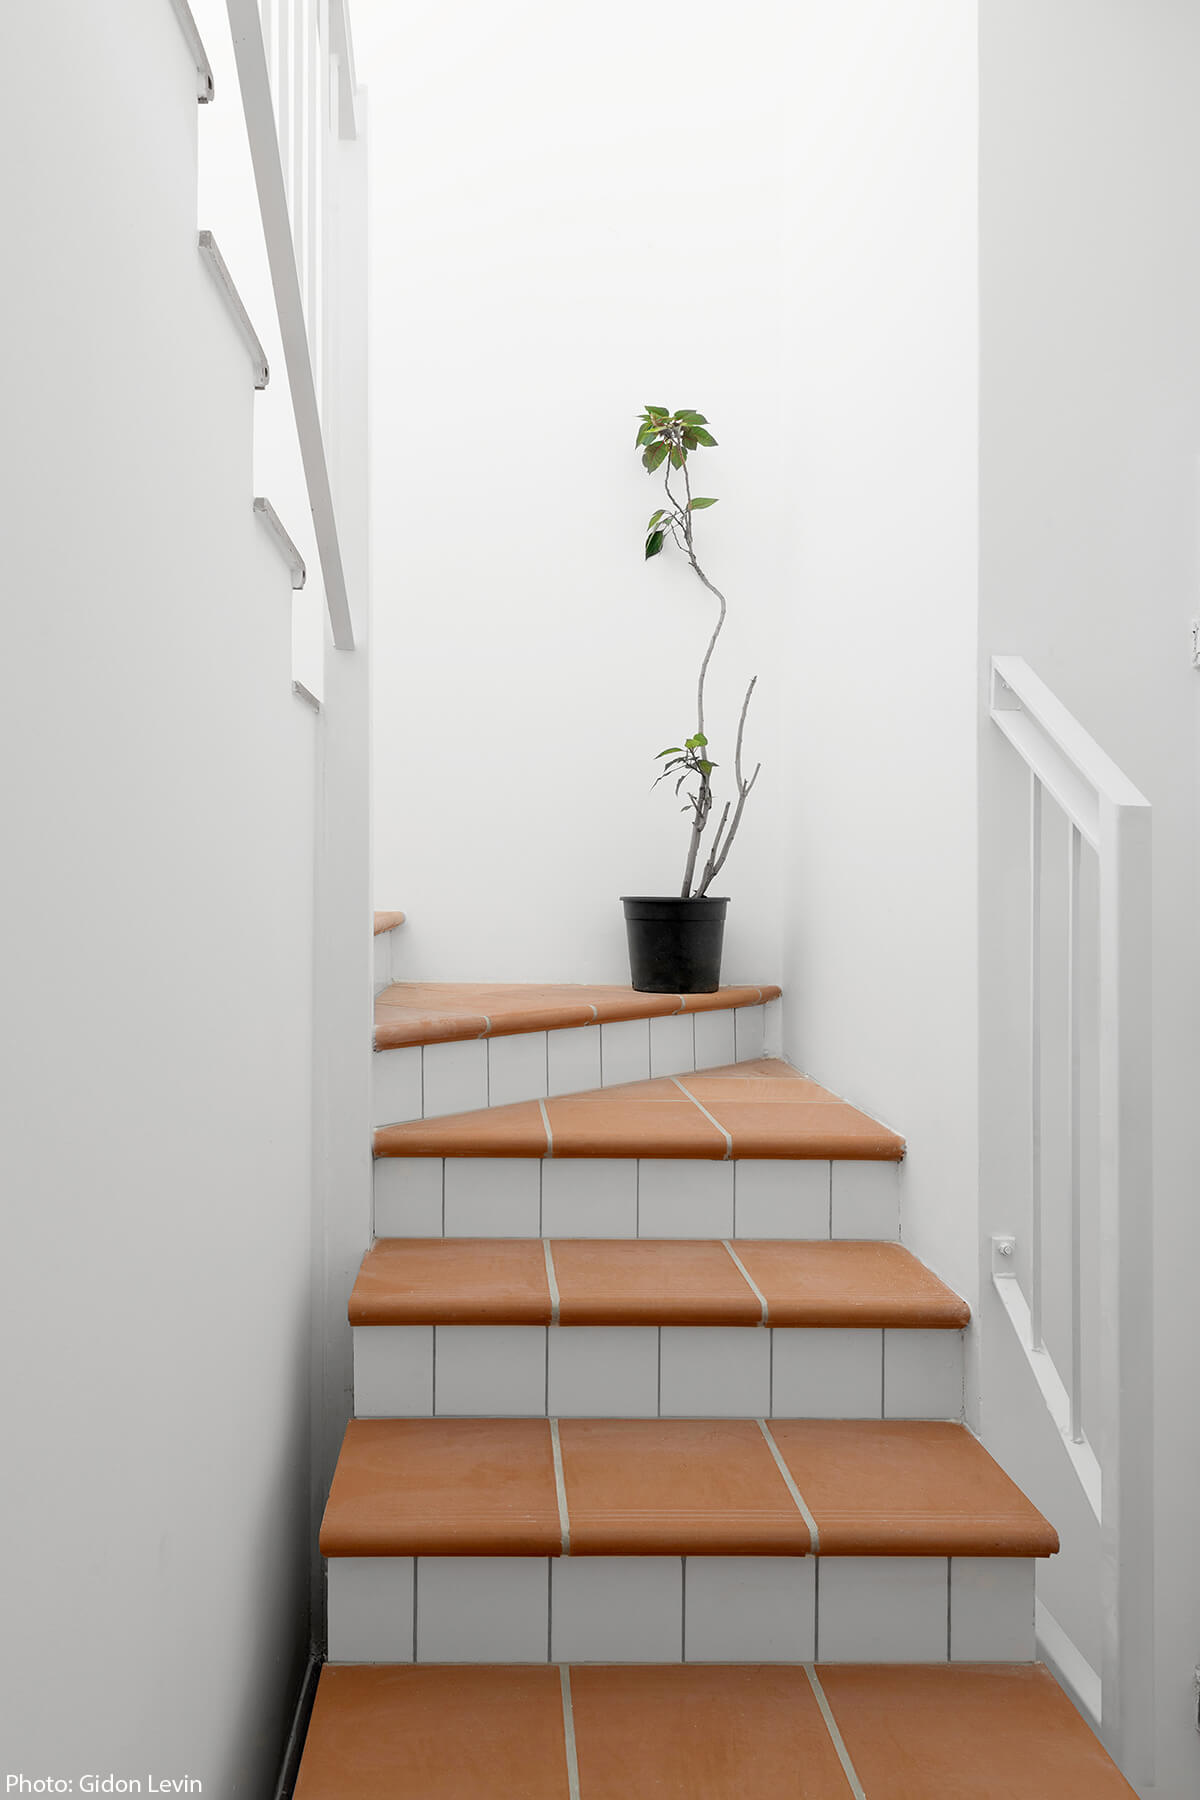 Terracotta stairs design by Jonathan Canetti Architecture & Design - Fineshmaker